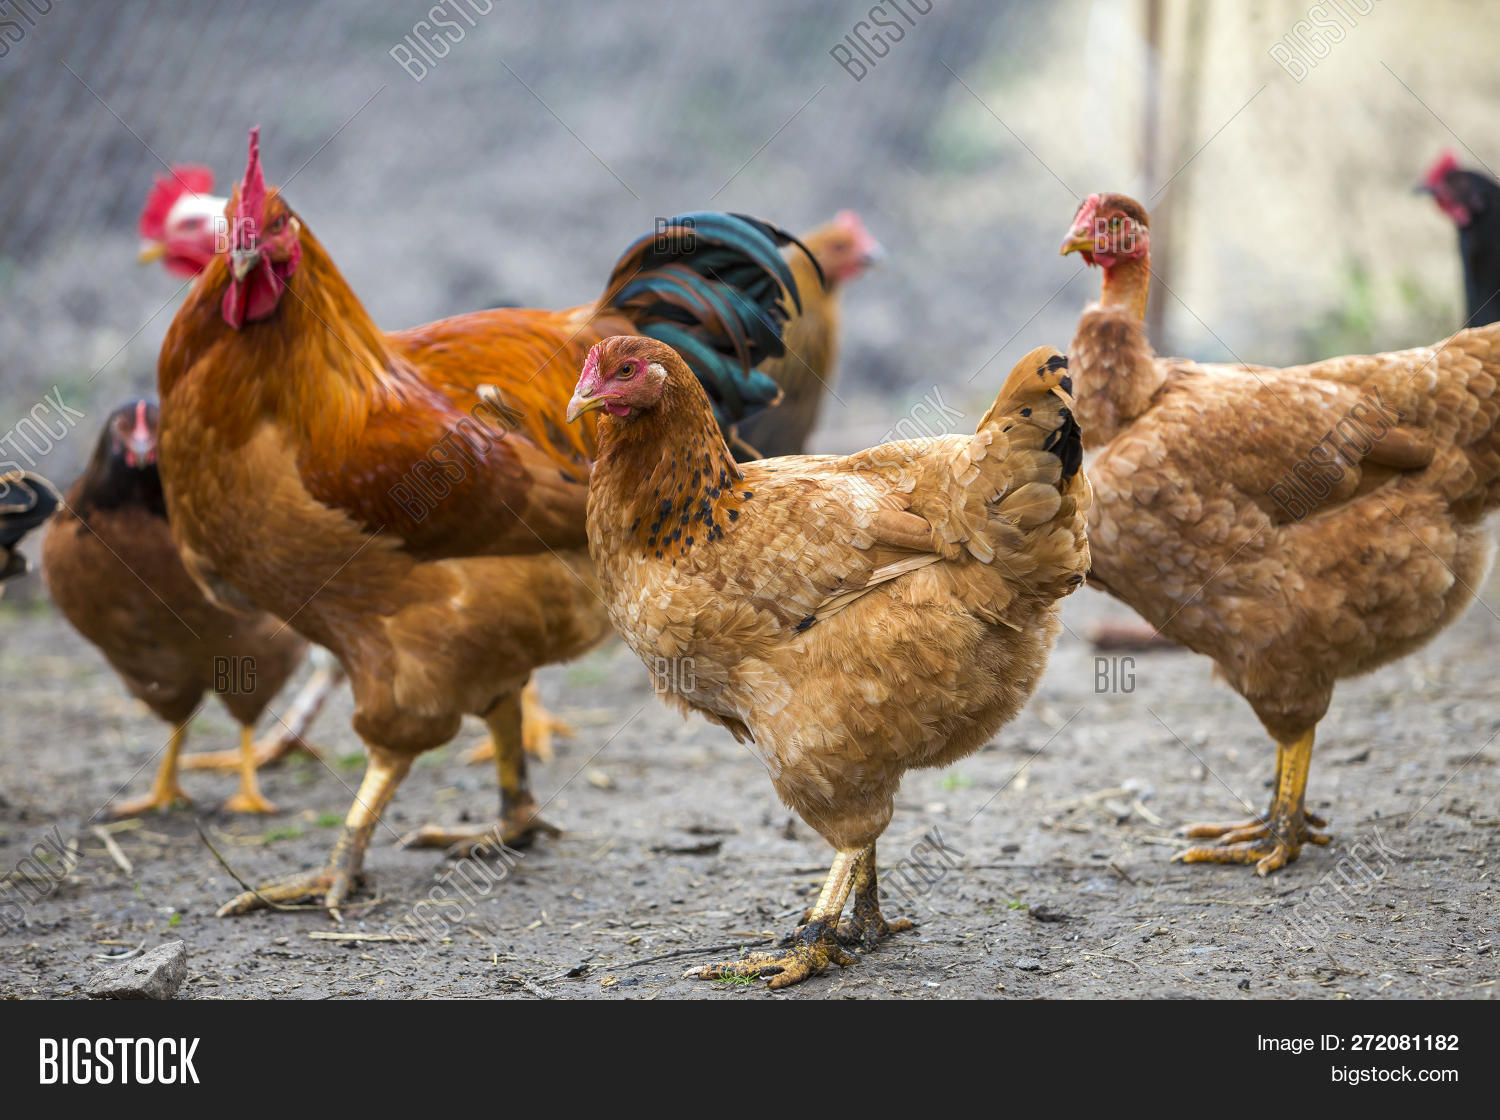 animal,background,beak,beautiful,bird,black,blurred,bright,brown,care,chick,chicken,colorful,comb,countryside,domestic,eggs,environment,farming,farmyard,feathers,feeding,flock,food,fowl,free,grassland,healthy,hen,laying,meadow,meat,natural,nature,nutrition,one,organic,outdoors,outside,pasture,poultry,production,rooster,rural,spring,summer,sunny,wings,yard